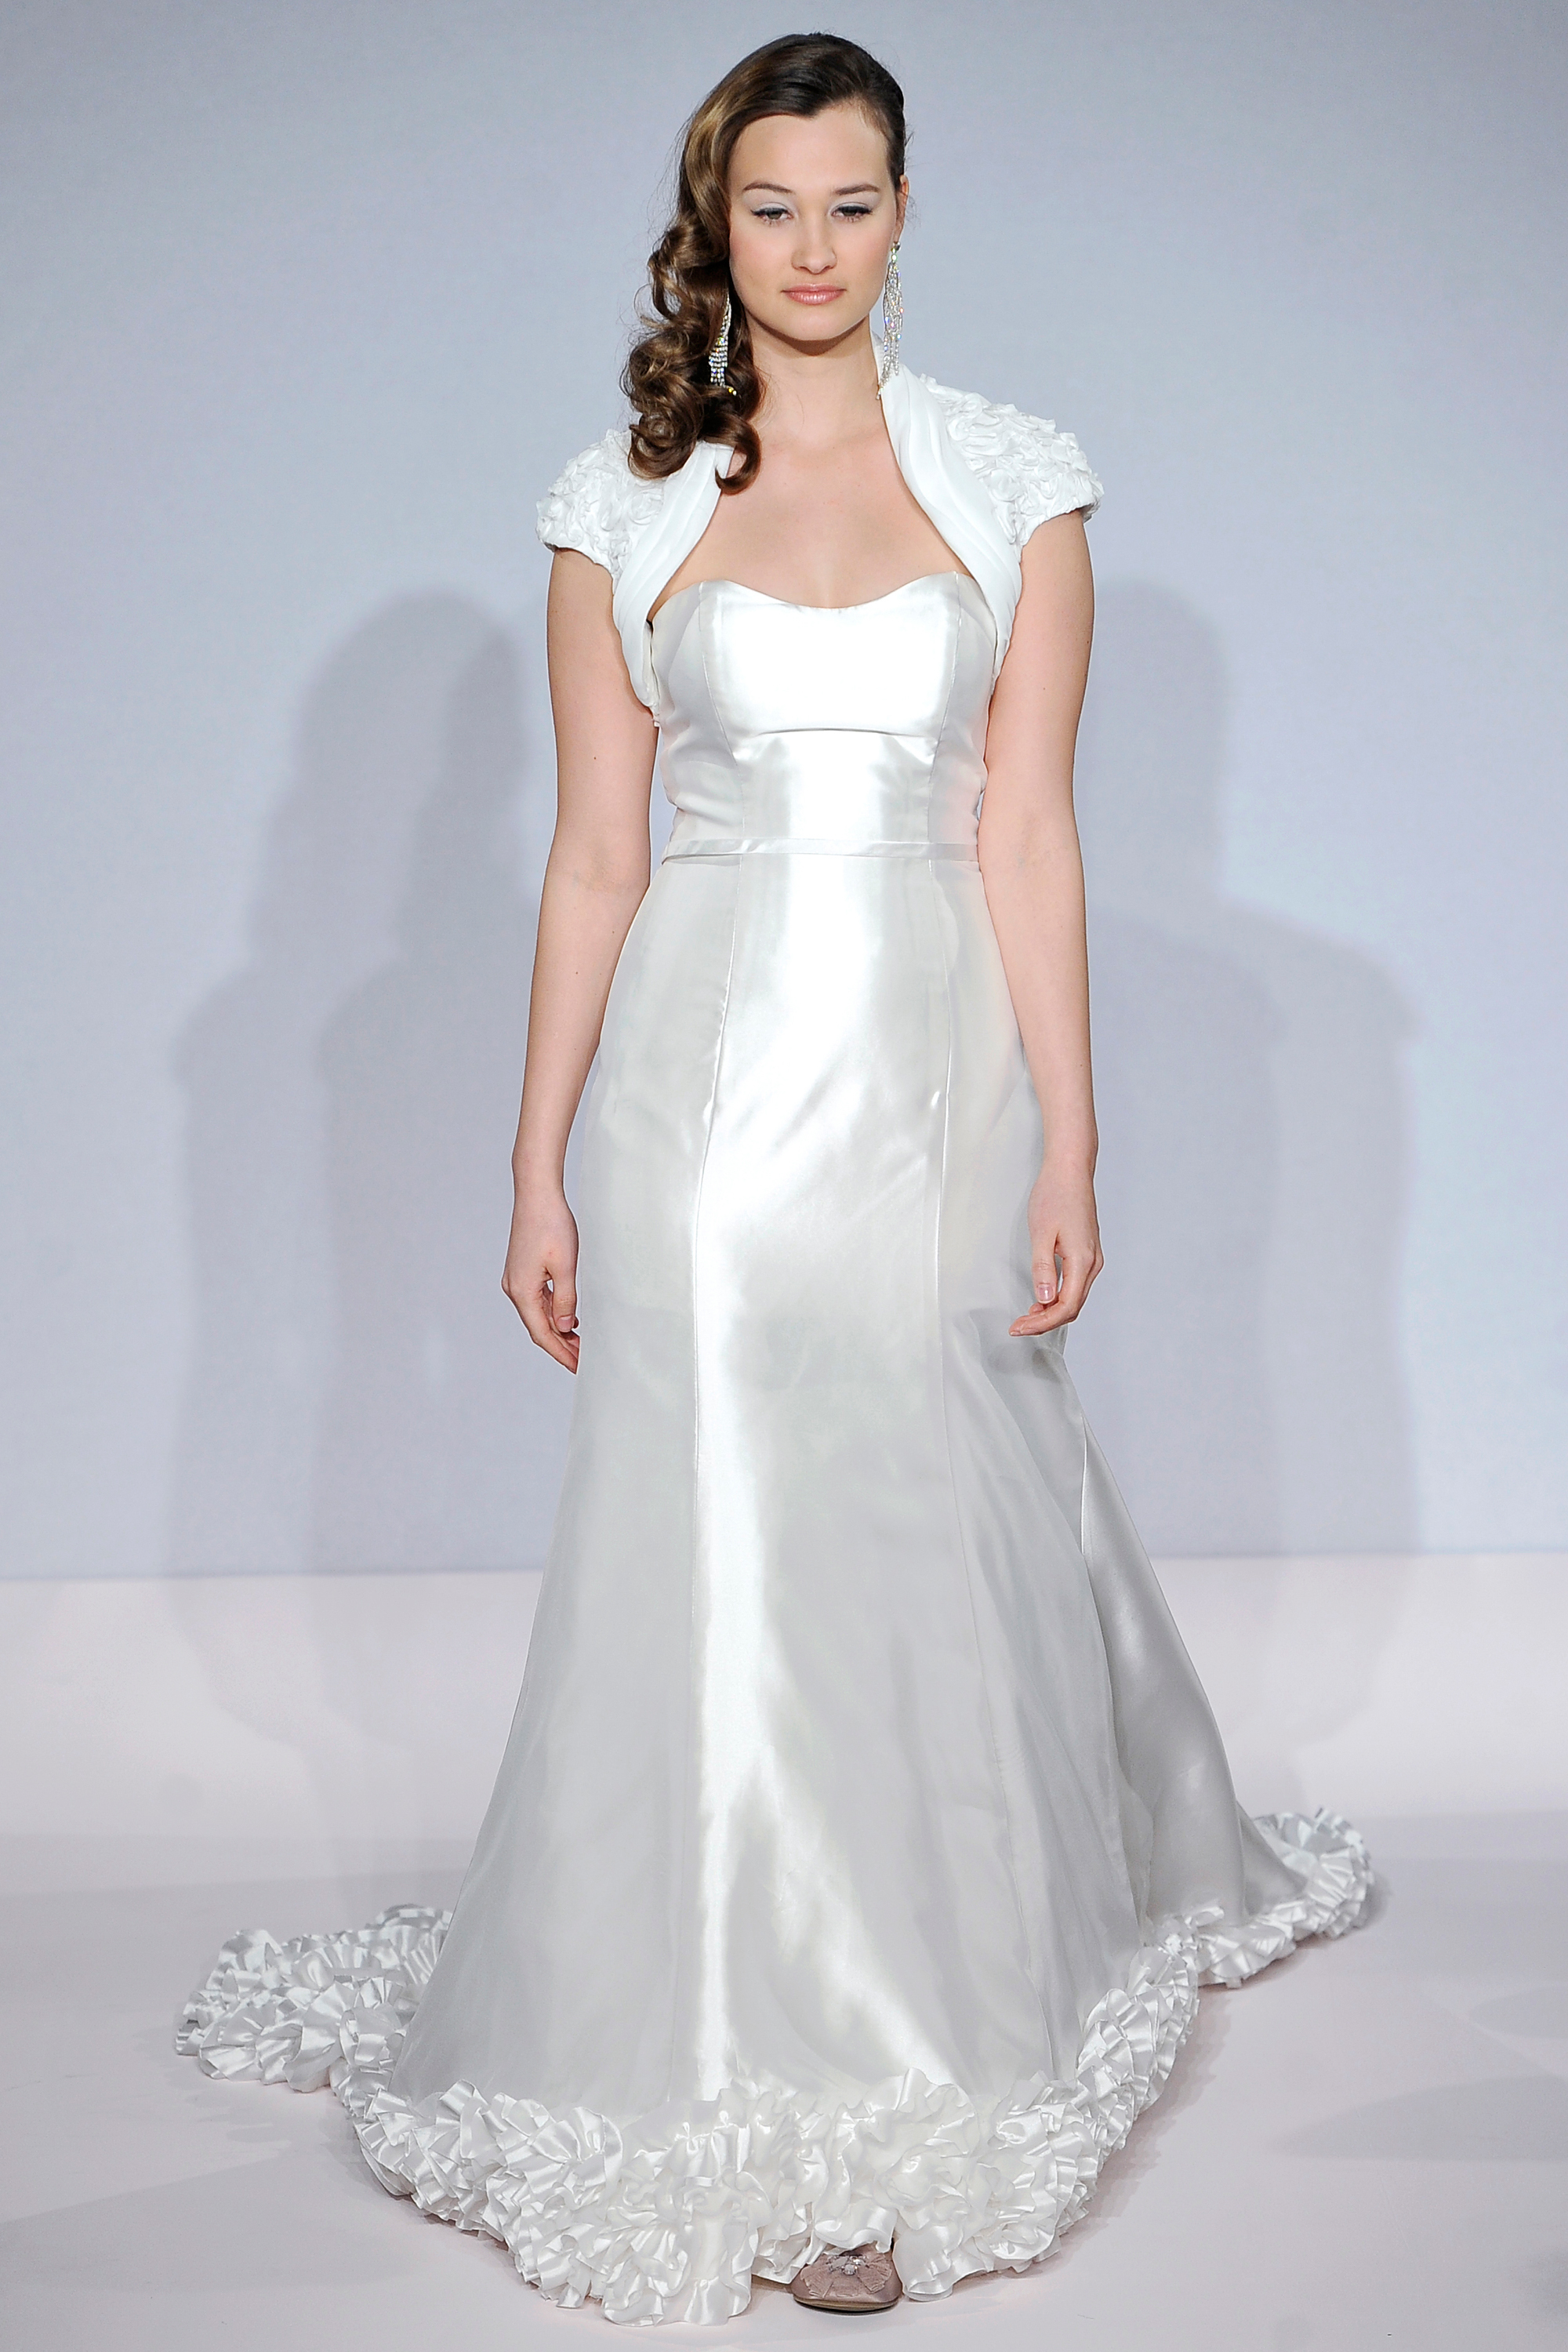 henry-roth-and-michelle-roth-spring2-13-wd108745-008-df.jpg